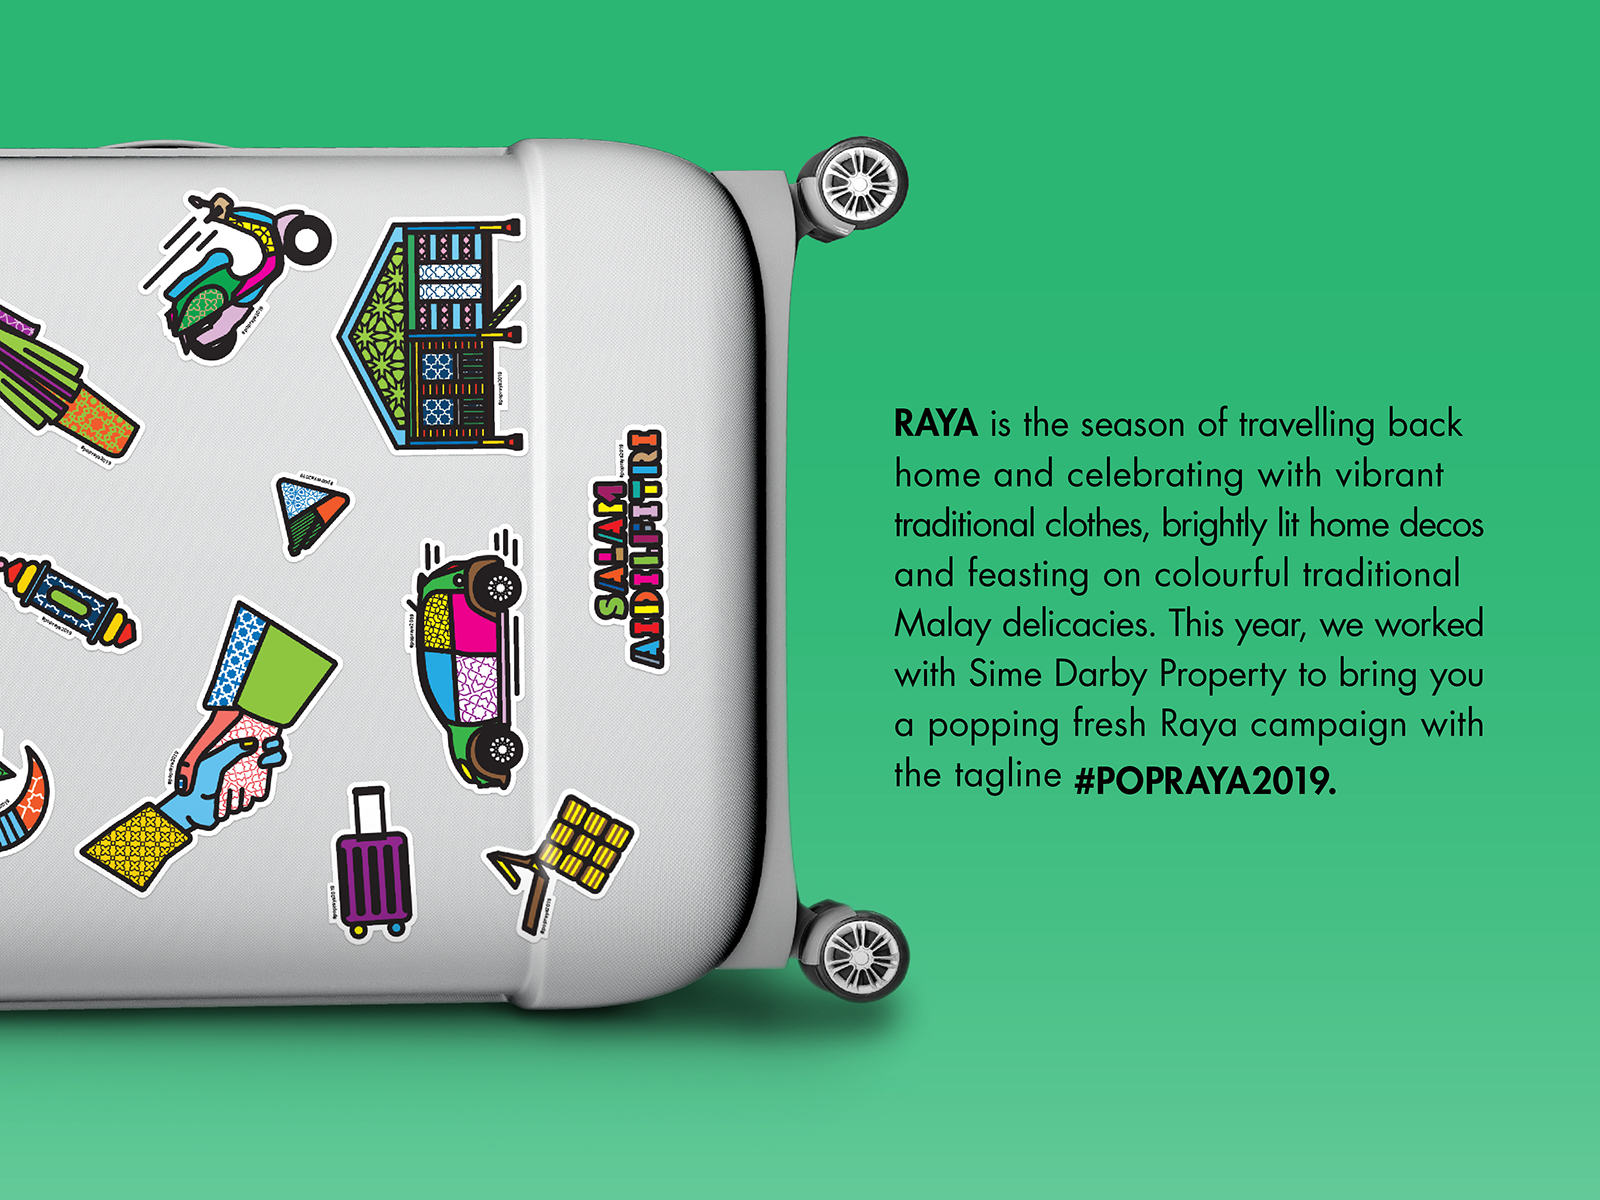 Sime Darby POPRAYA 2019 campaign showcasing illustrated raya elements and traditions stickers on travel luggage and campaign description